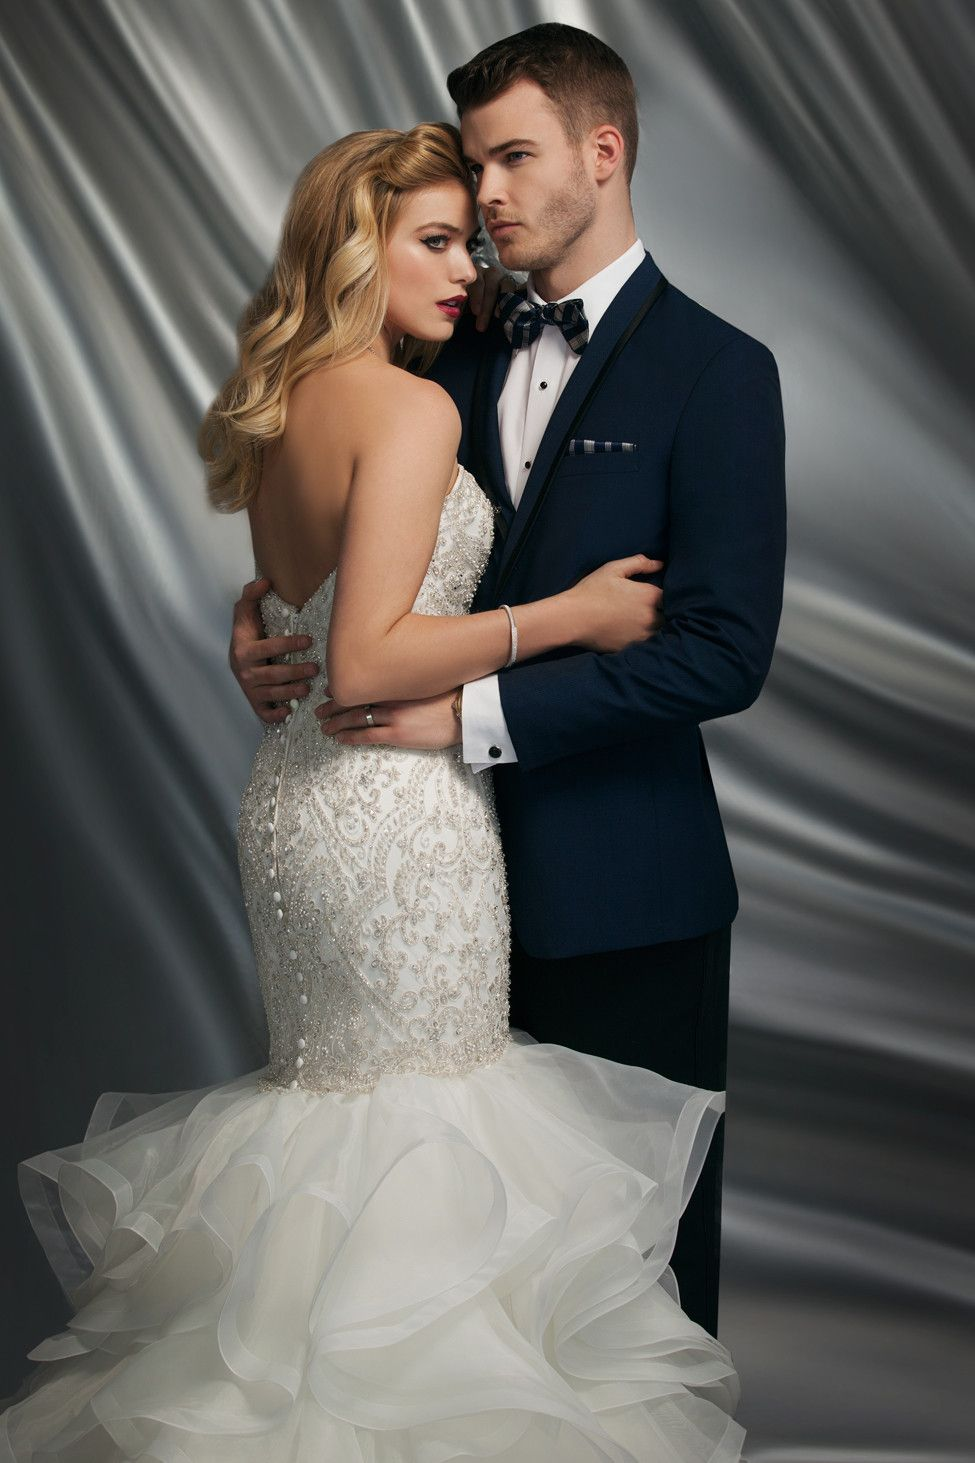 Celebrate your milestone occasion in one of these epic wedding gowns